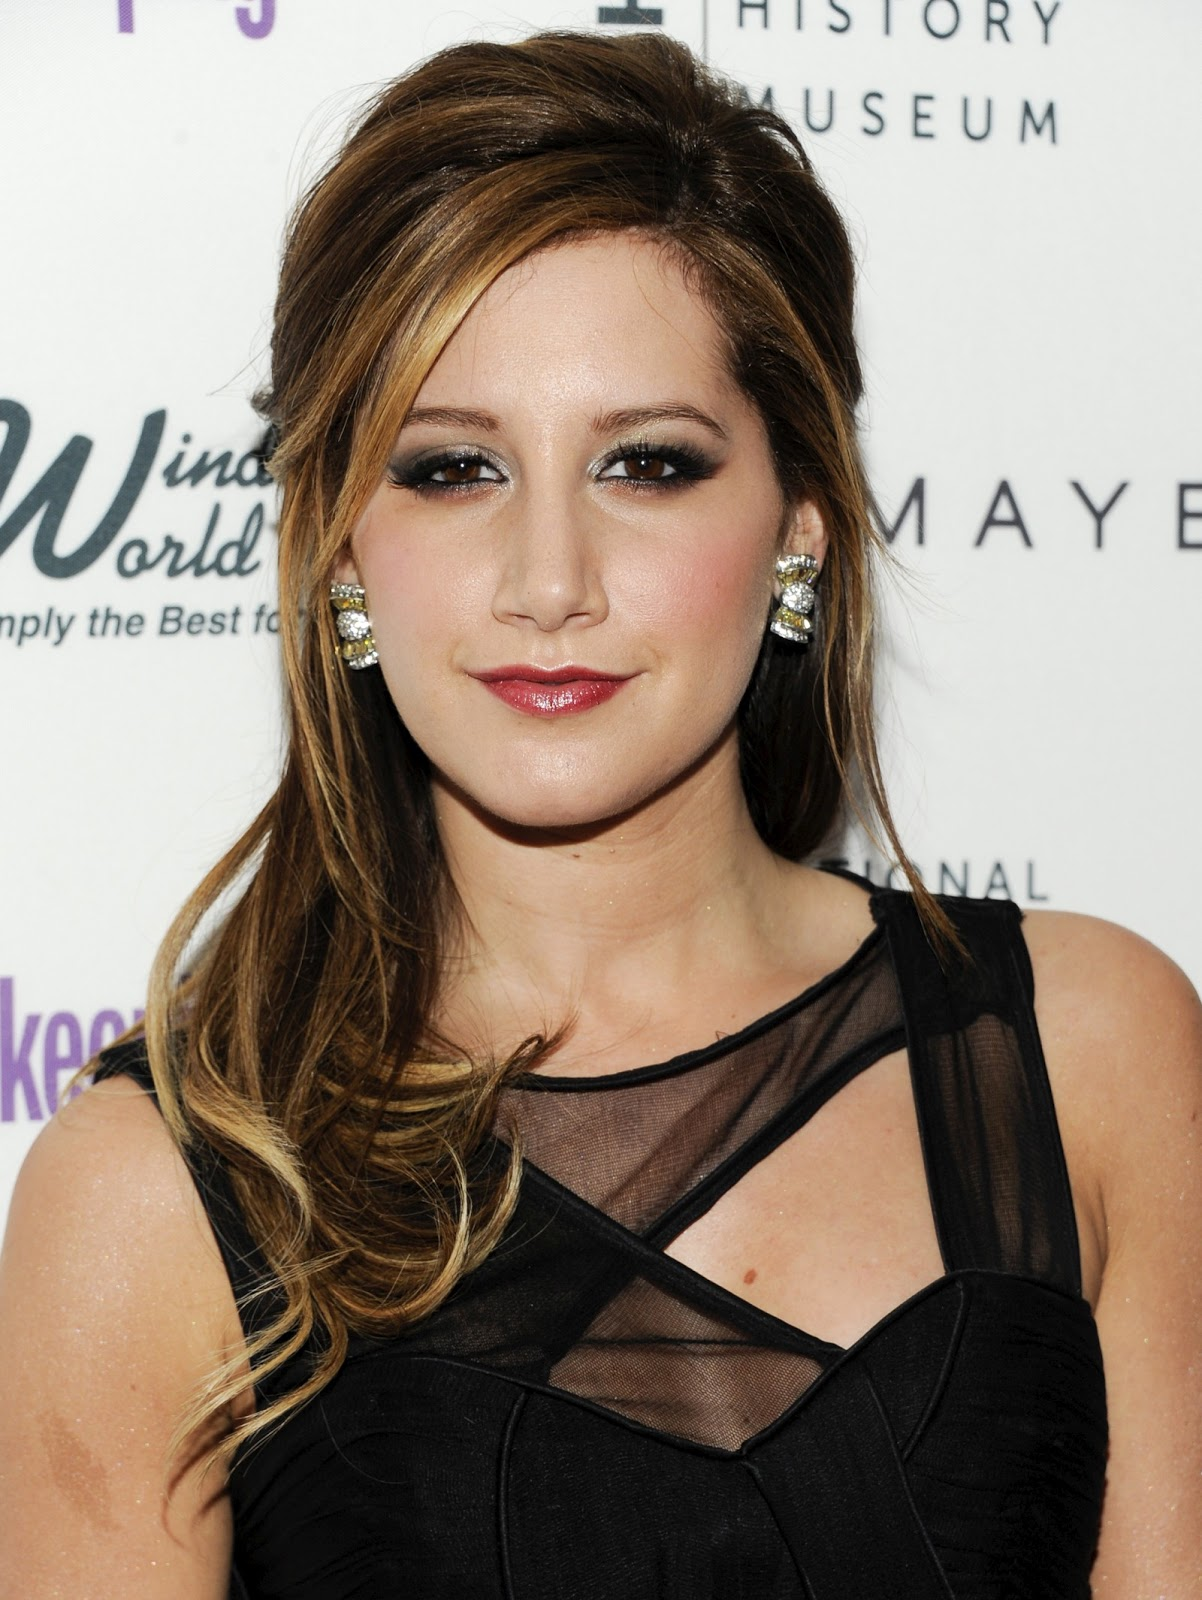 http://4.bp.blogspot.com/-hw2VABK6krg/TviZ6Pt4wLI/AAAAAAAABVY/HXAIy8dGob0/s1600/Ashley-Tisdale-Ashleytisdale-hairstyles-pictures-videos-movies-actress-pics+%25281%2529.jpg